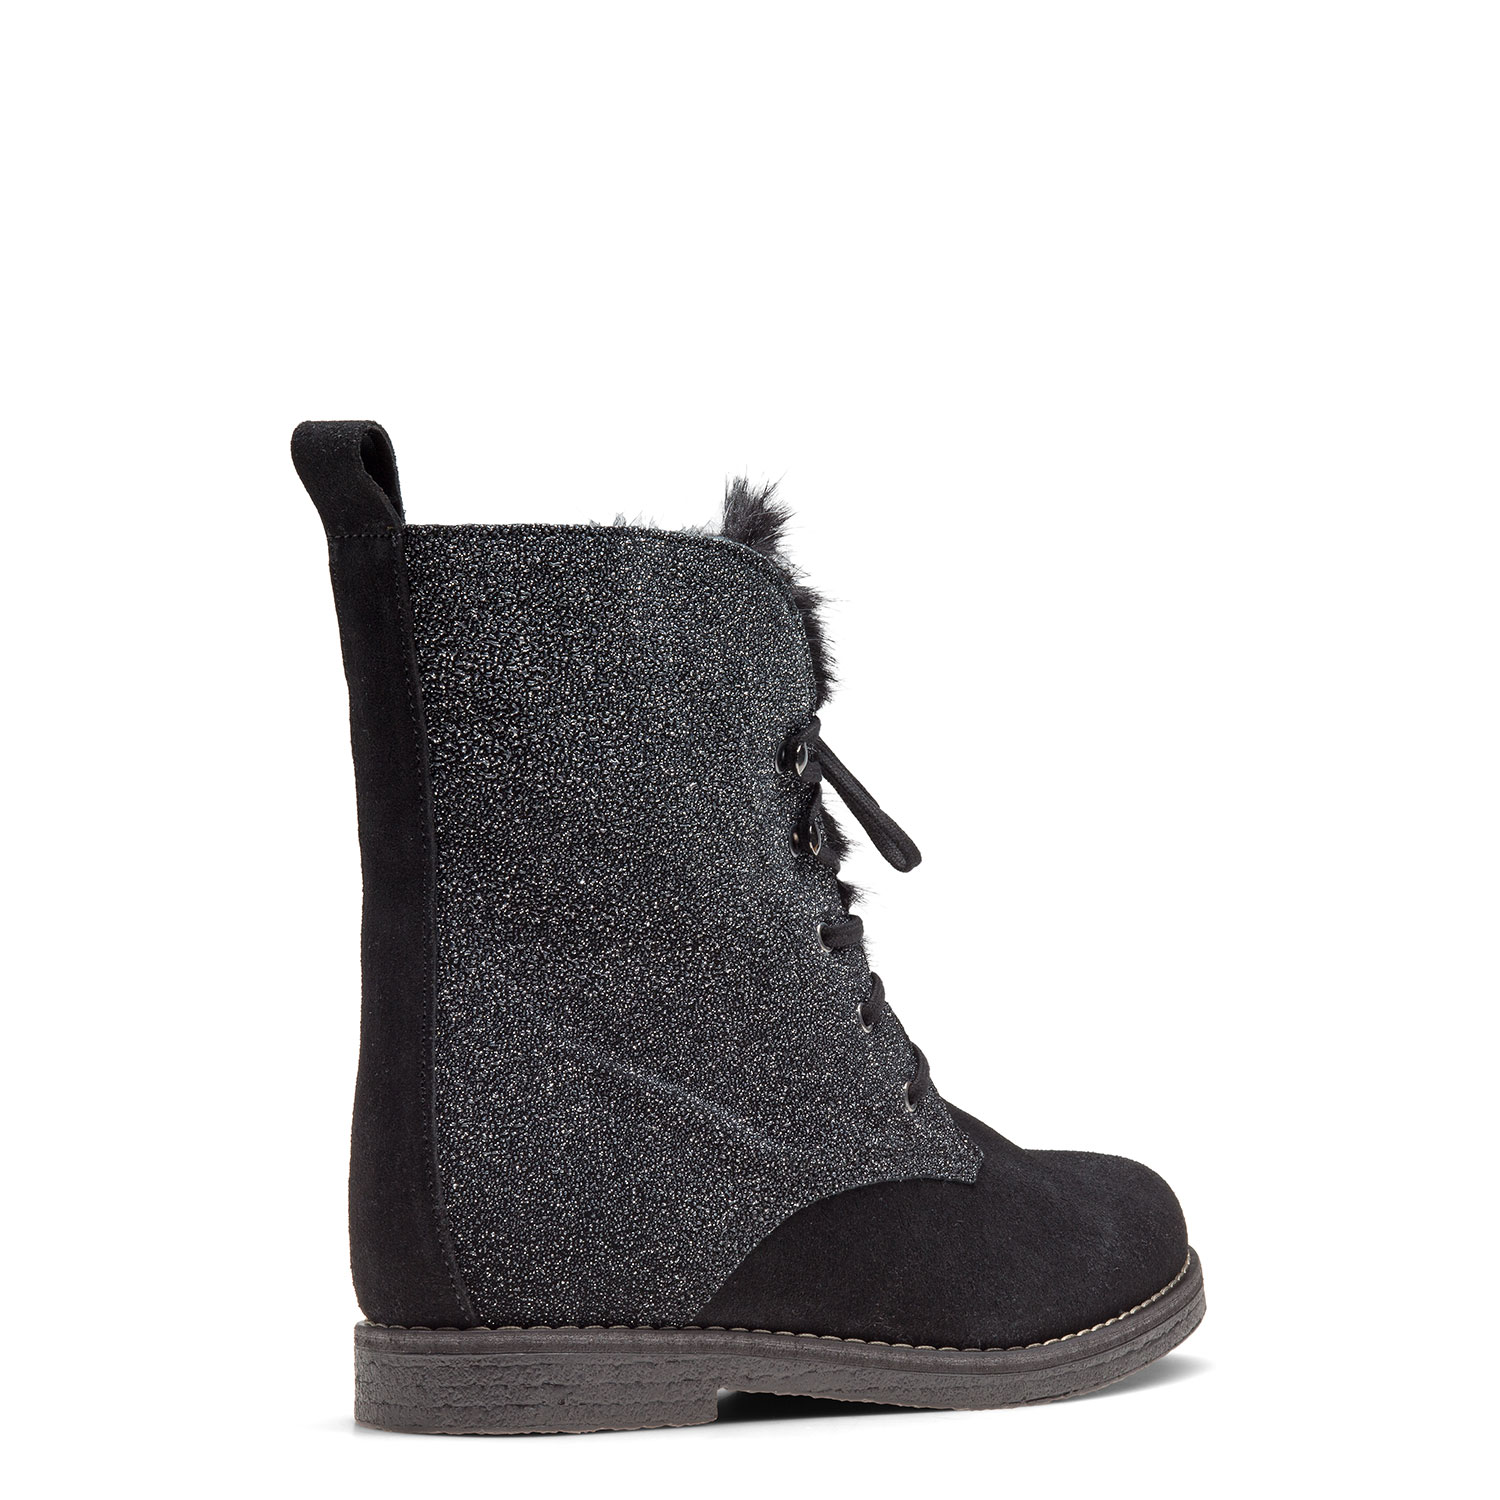 Women's fur-lined ankle boots CARLO PAZOLINI SW-SNW6-1